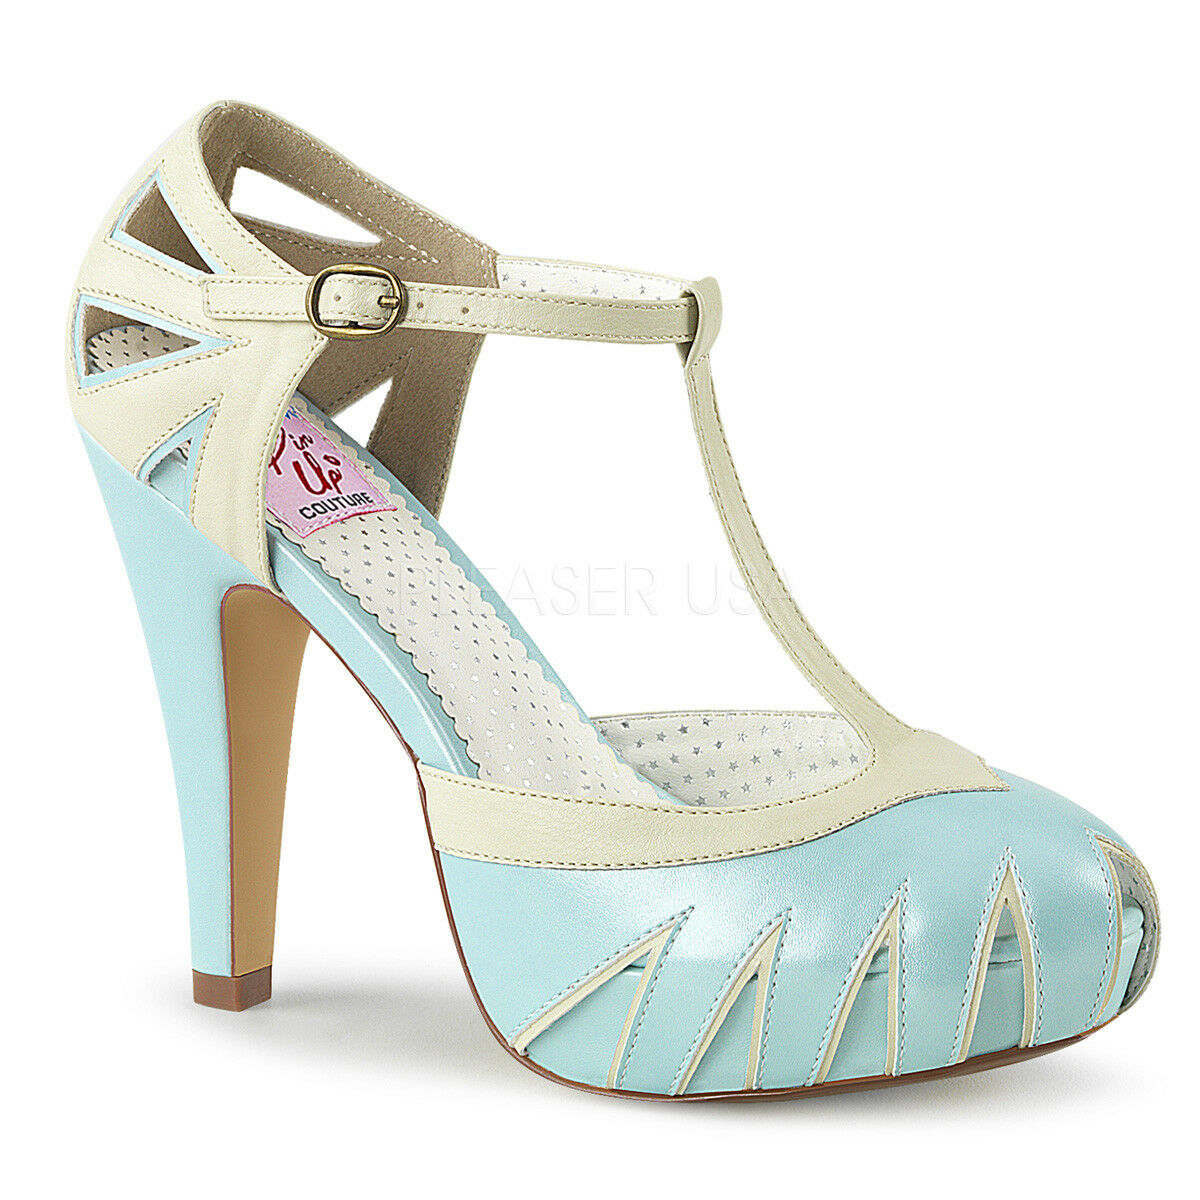 Pin Cream Up Couture BETTIE-25 Womens Baby Blue Cream Pin Leather Hidden Platform Pump b6d33e